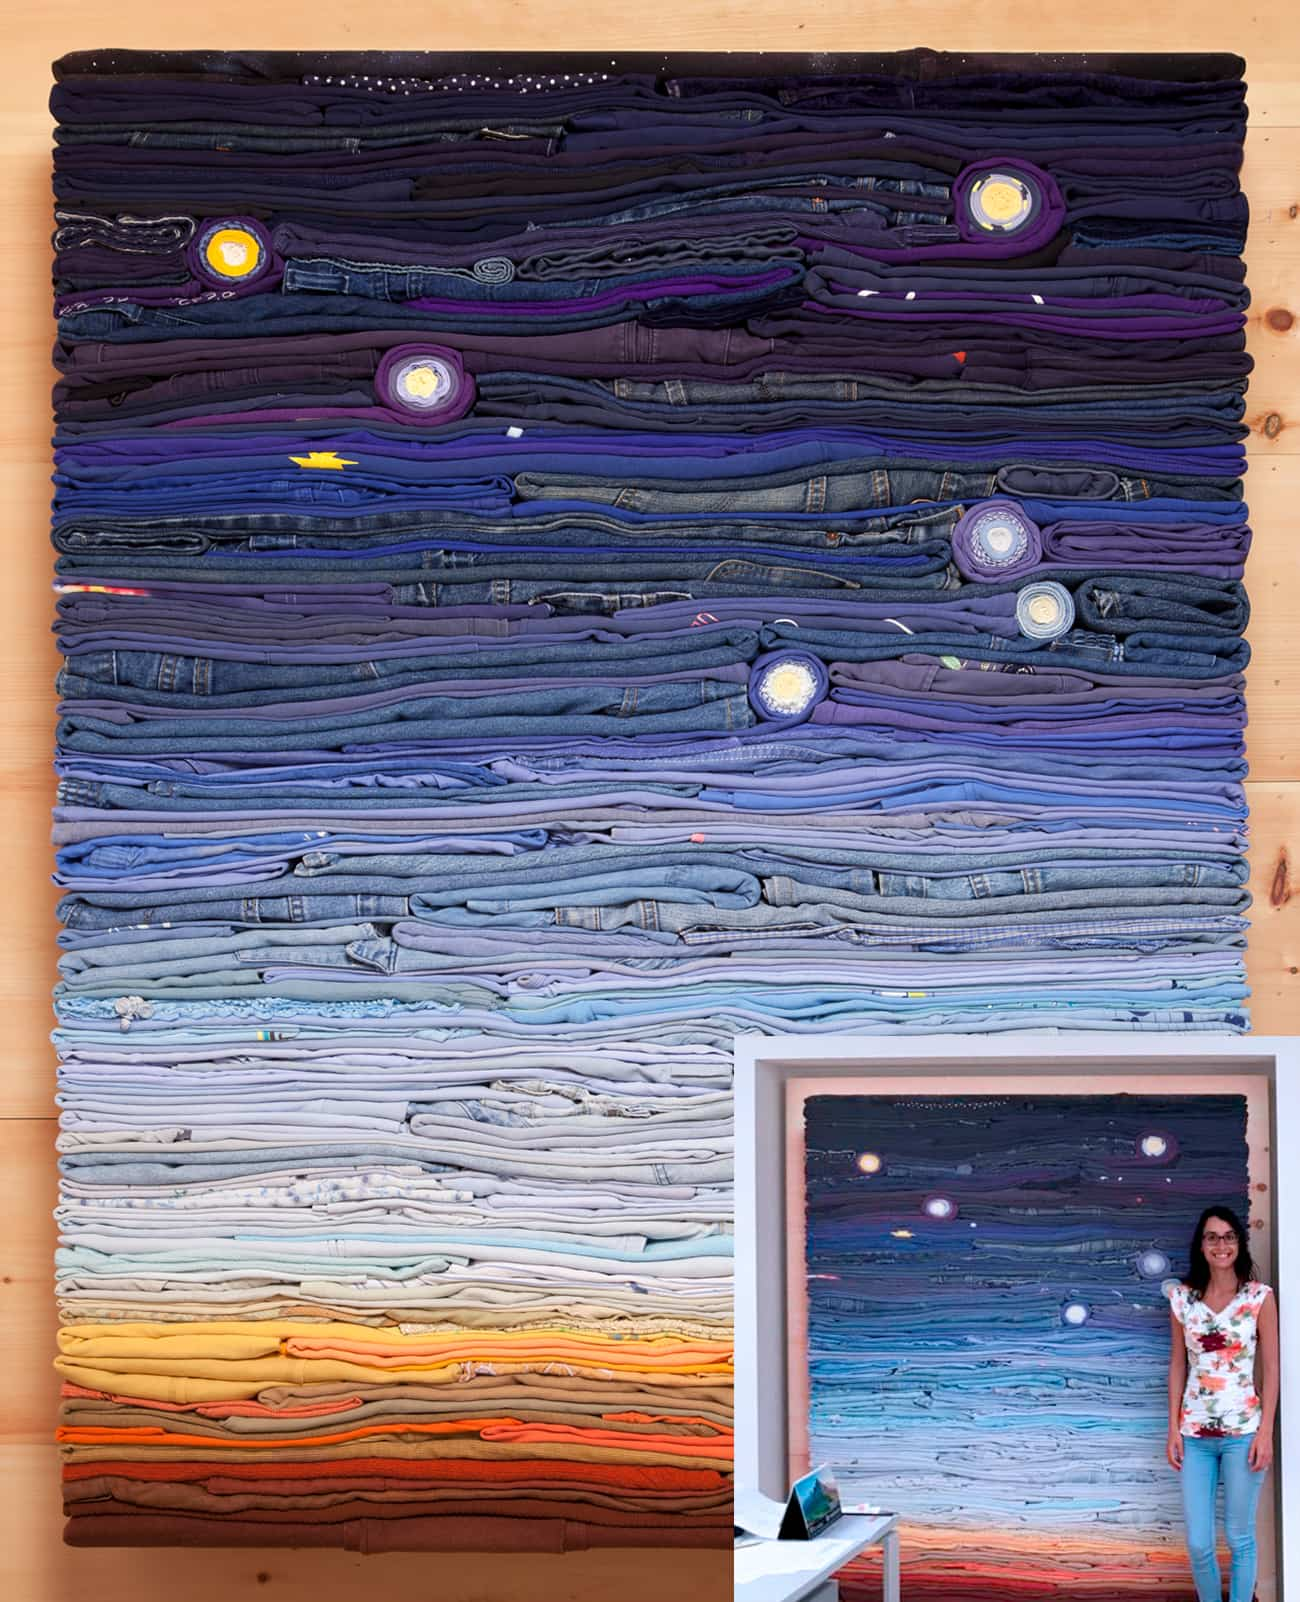 Night Sky, 2016 with Italian Collector Giorgia Lera.